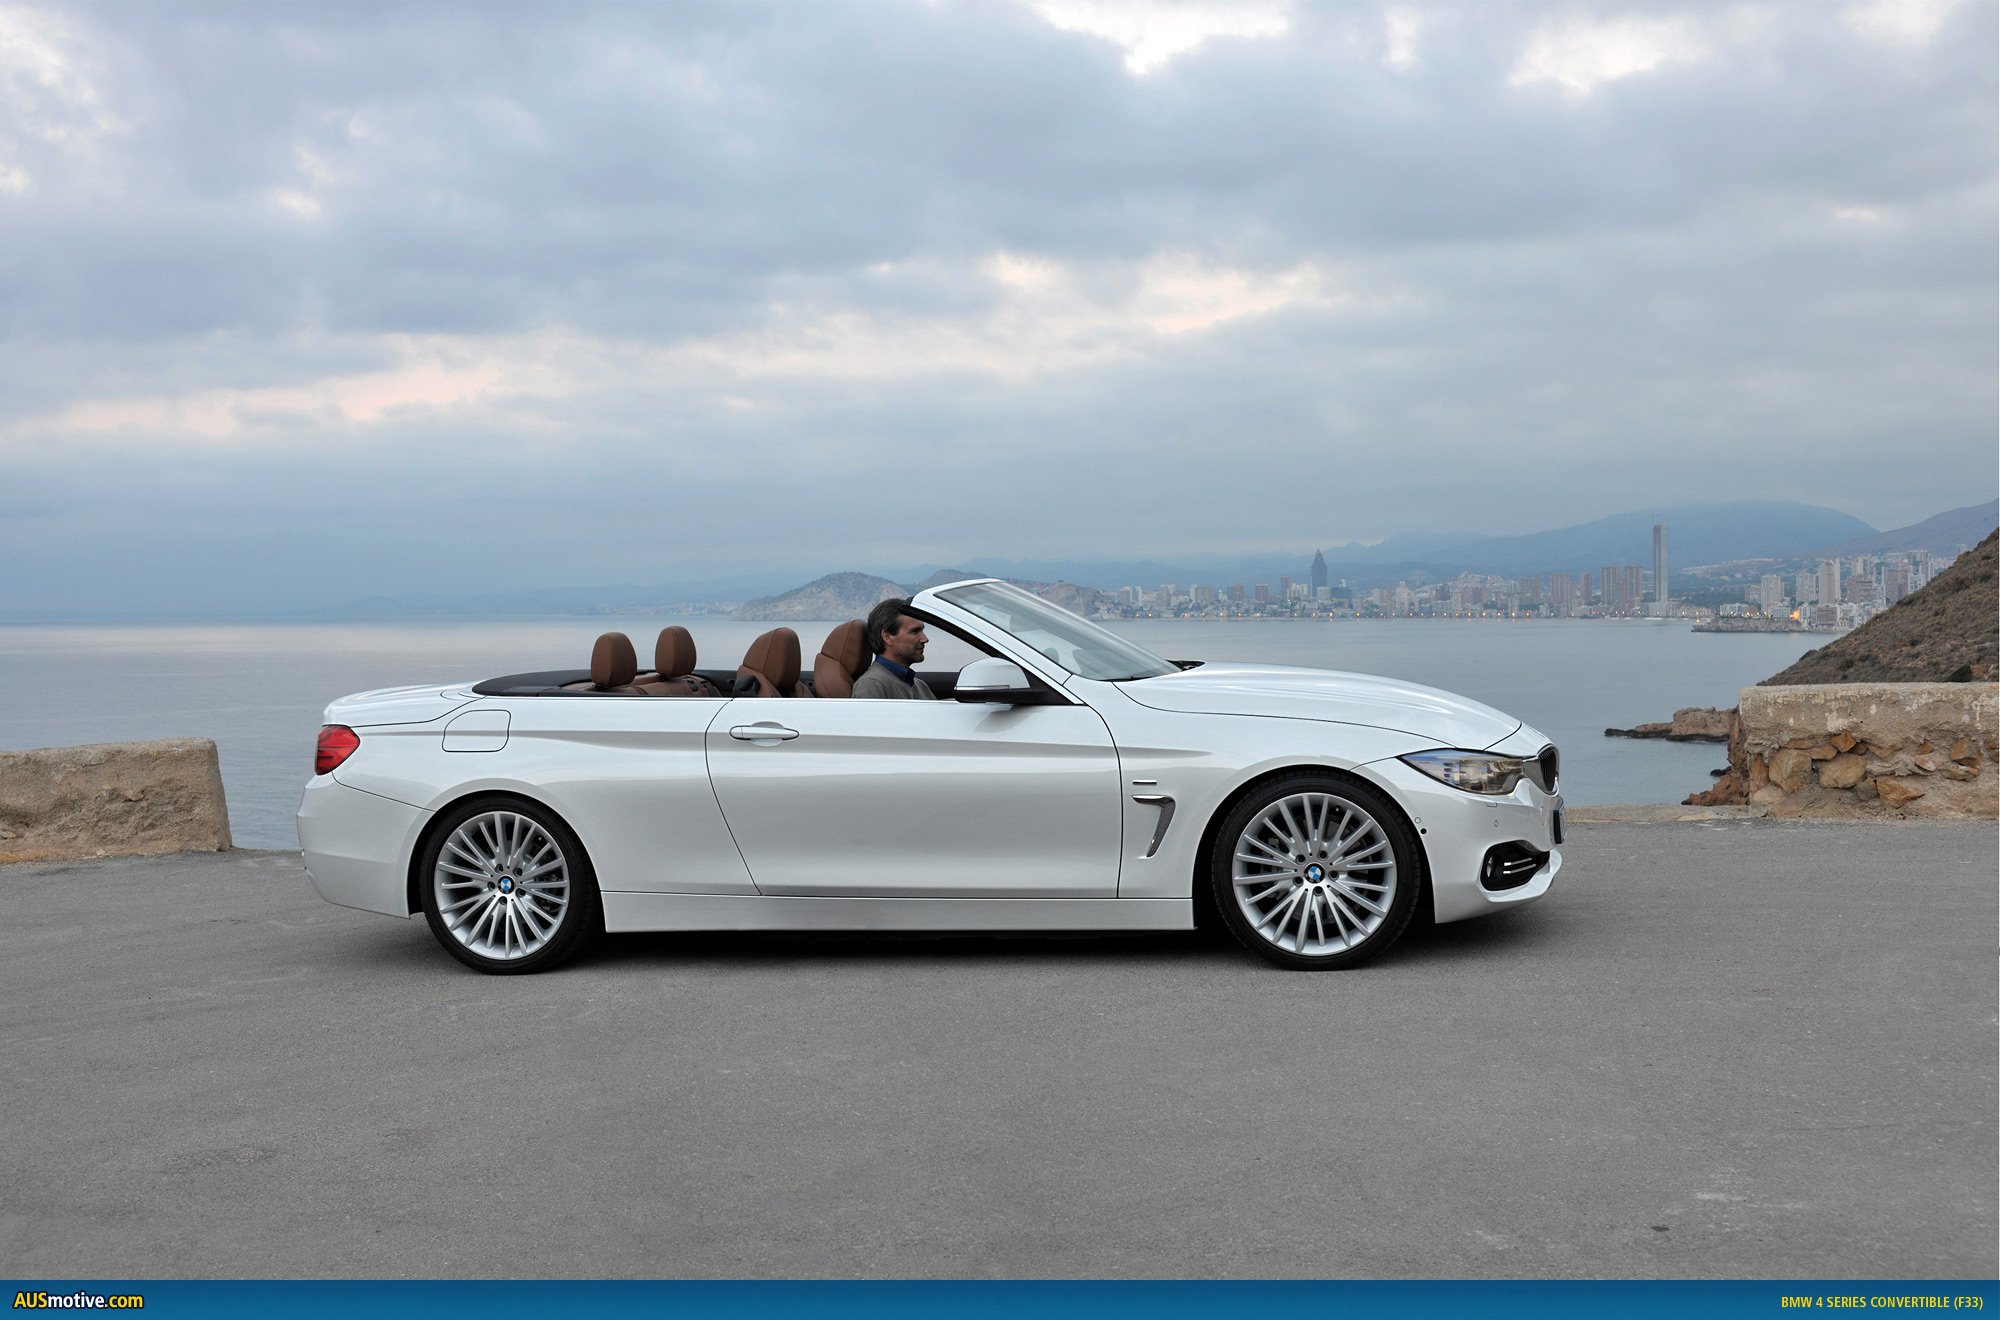 Bmw 428i Convertible 2017 >> AUSmotive.com » BMW 4 Series Convertible revealed